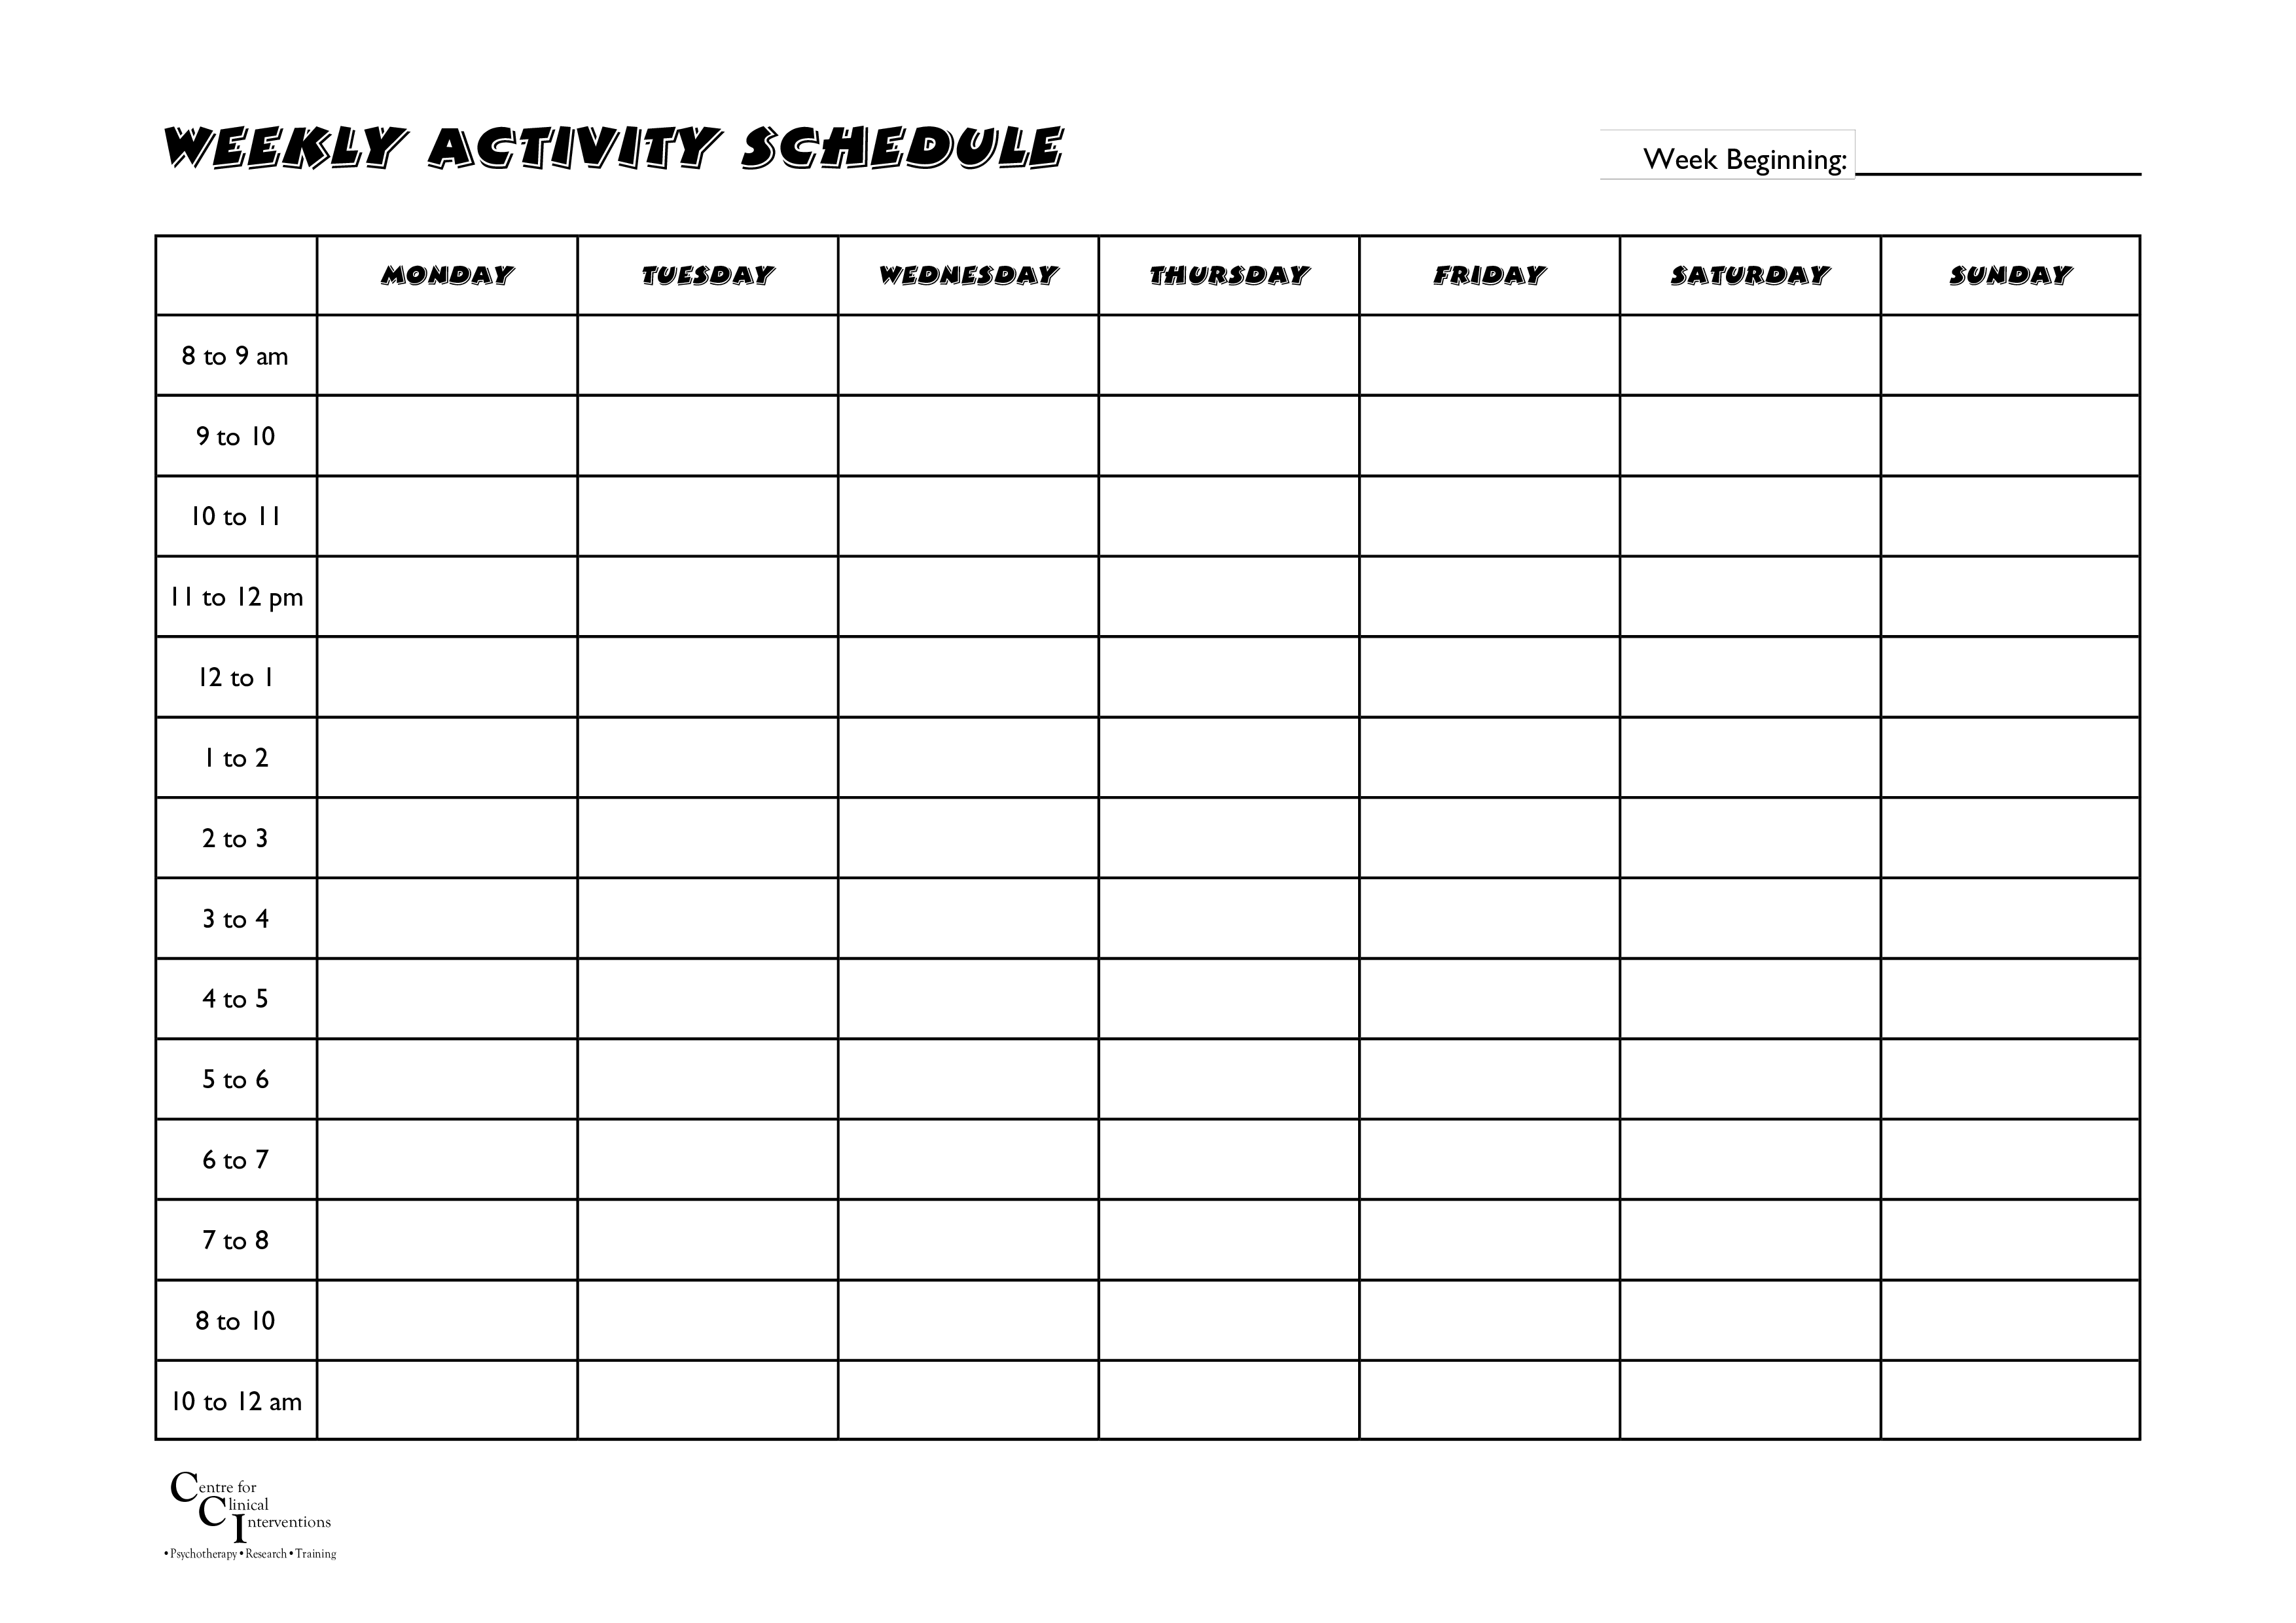 free weekly activities schedule templates at